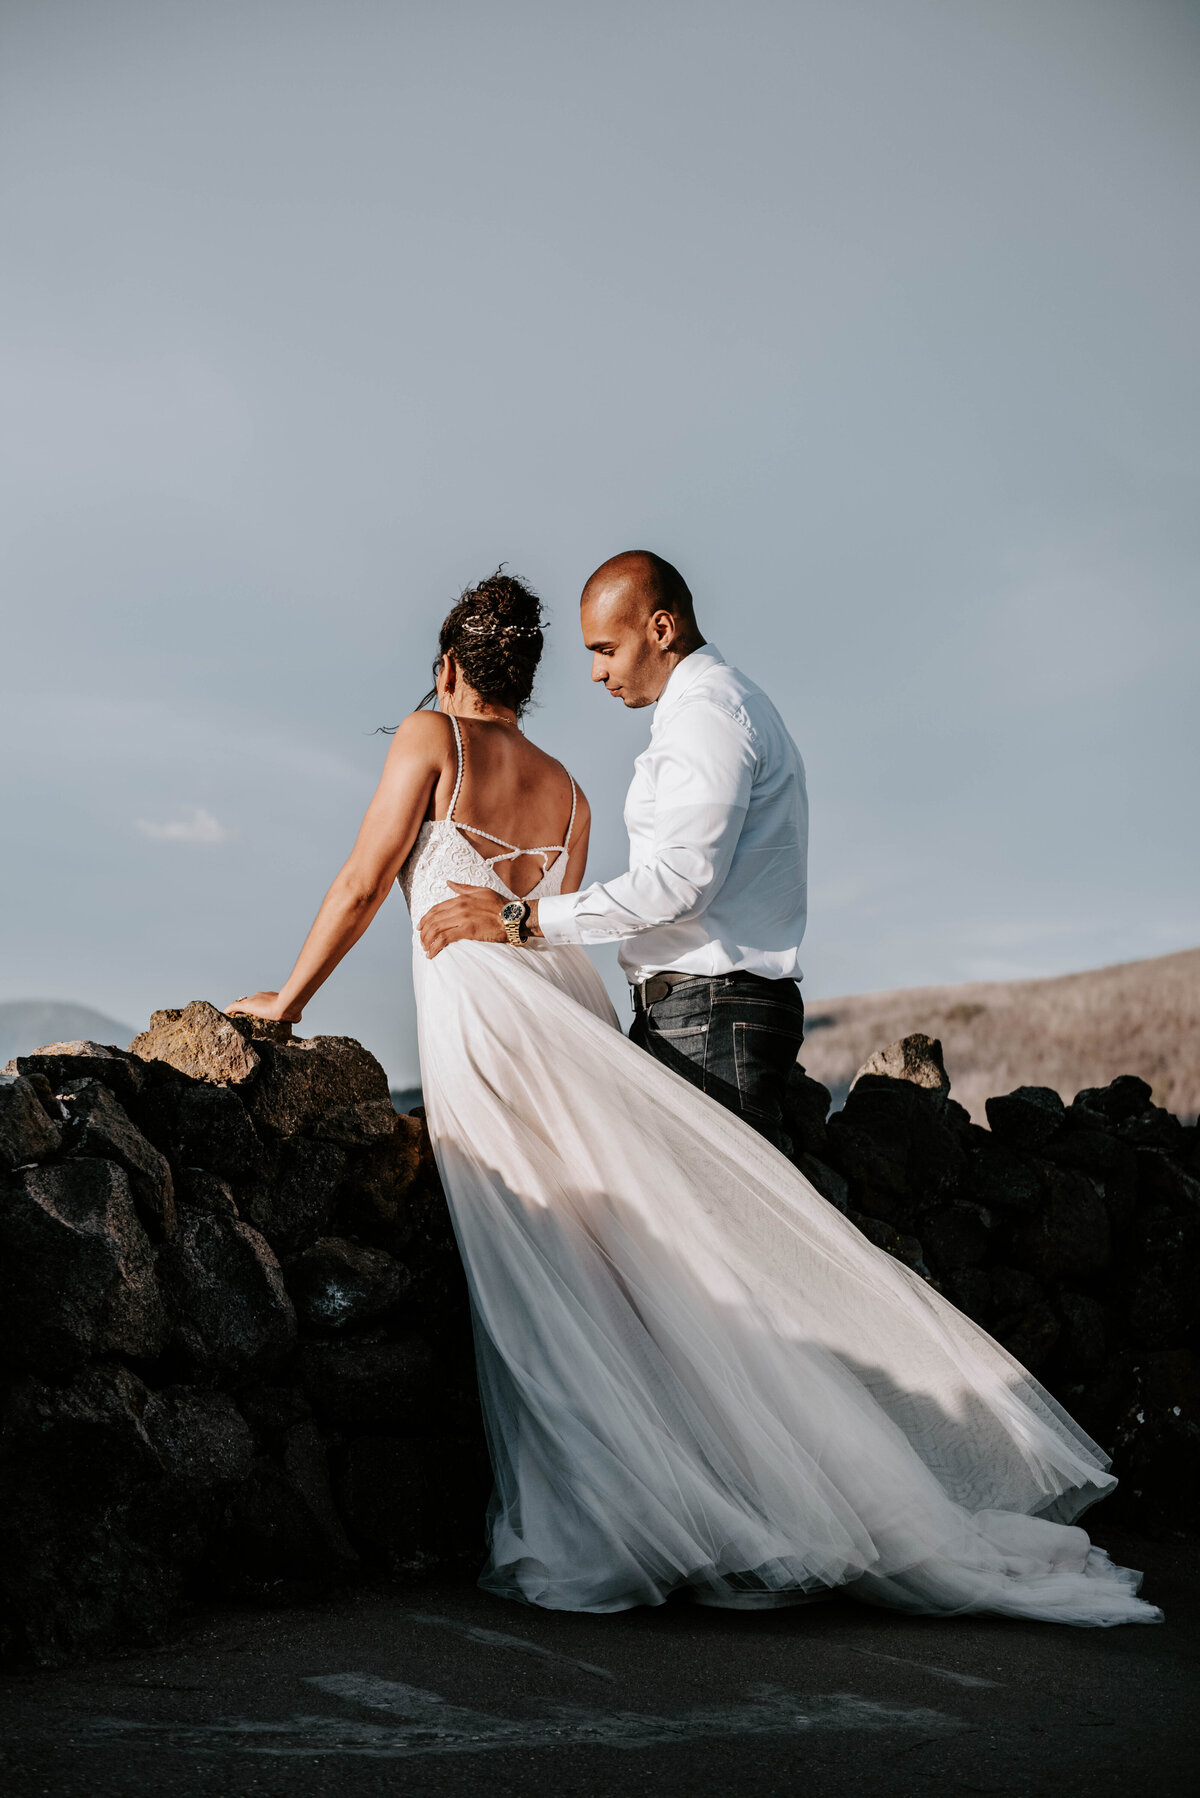 sisters-bend-oregon-summer-wedding-elopement-photographer-dress-scenic-byway-wedding-deewright-observatory-4929